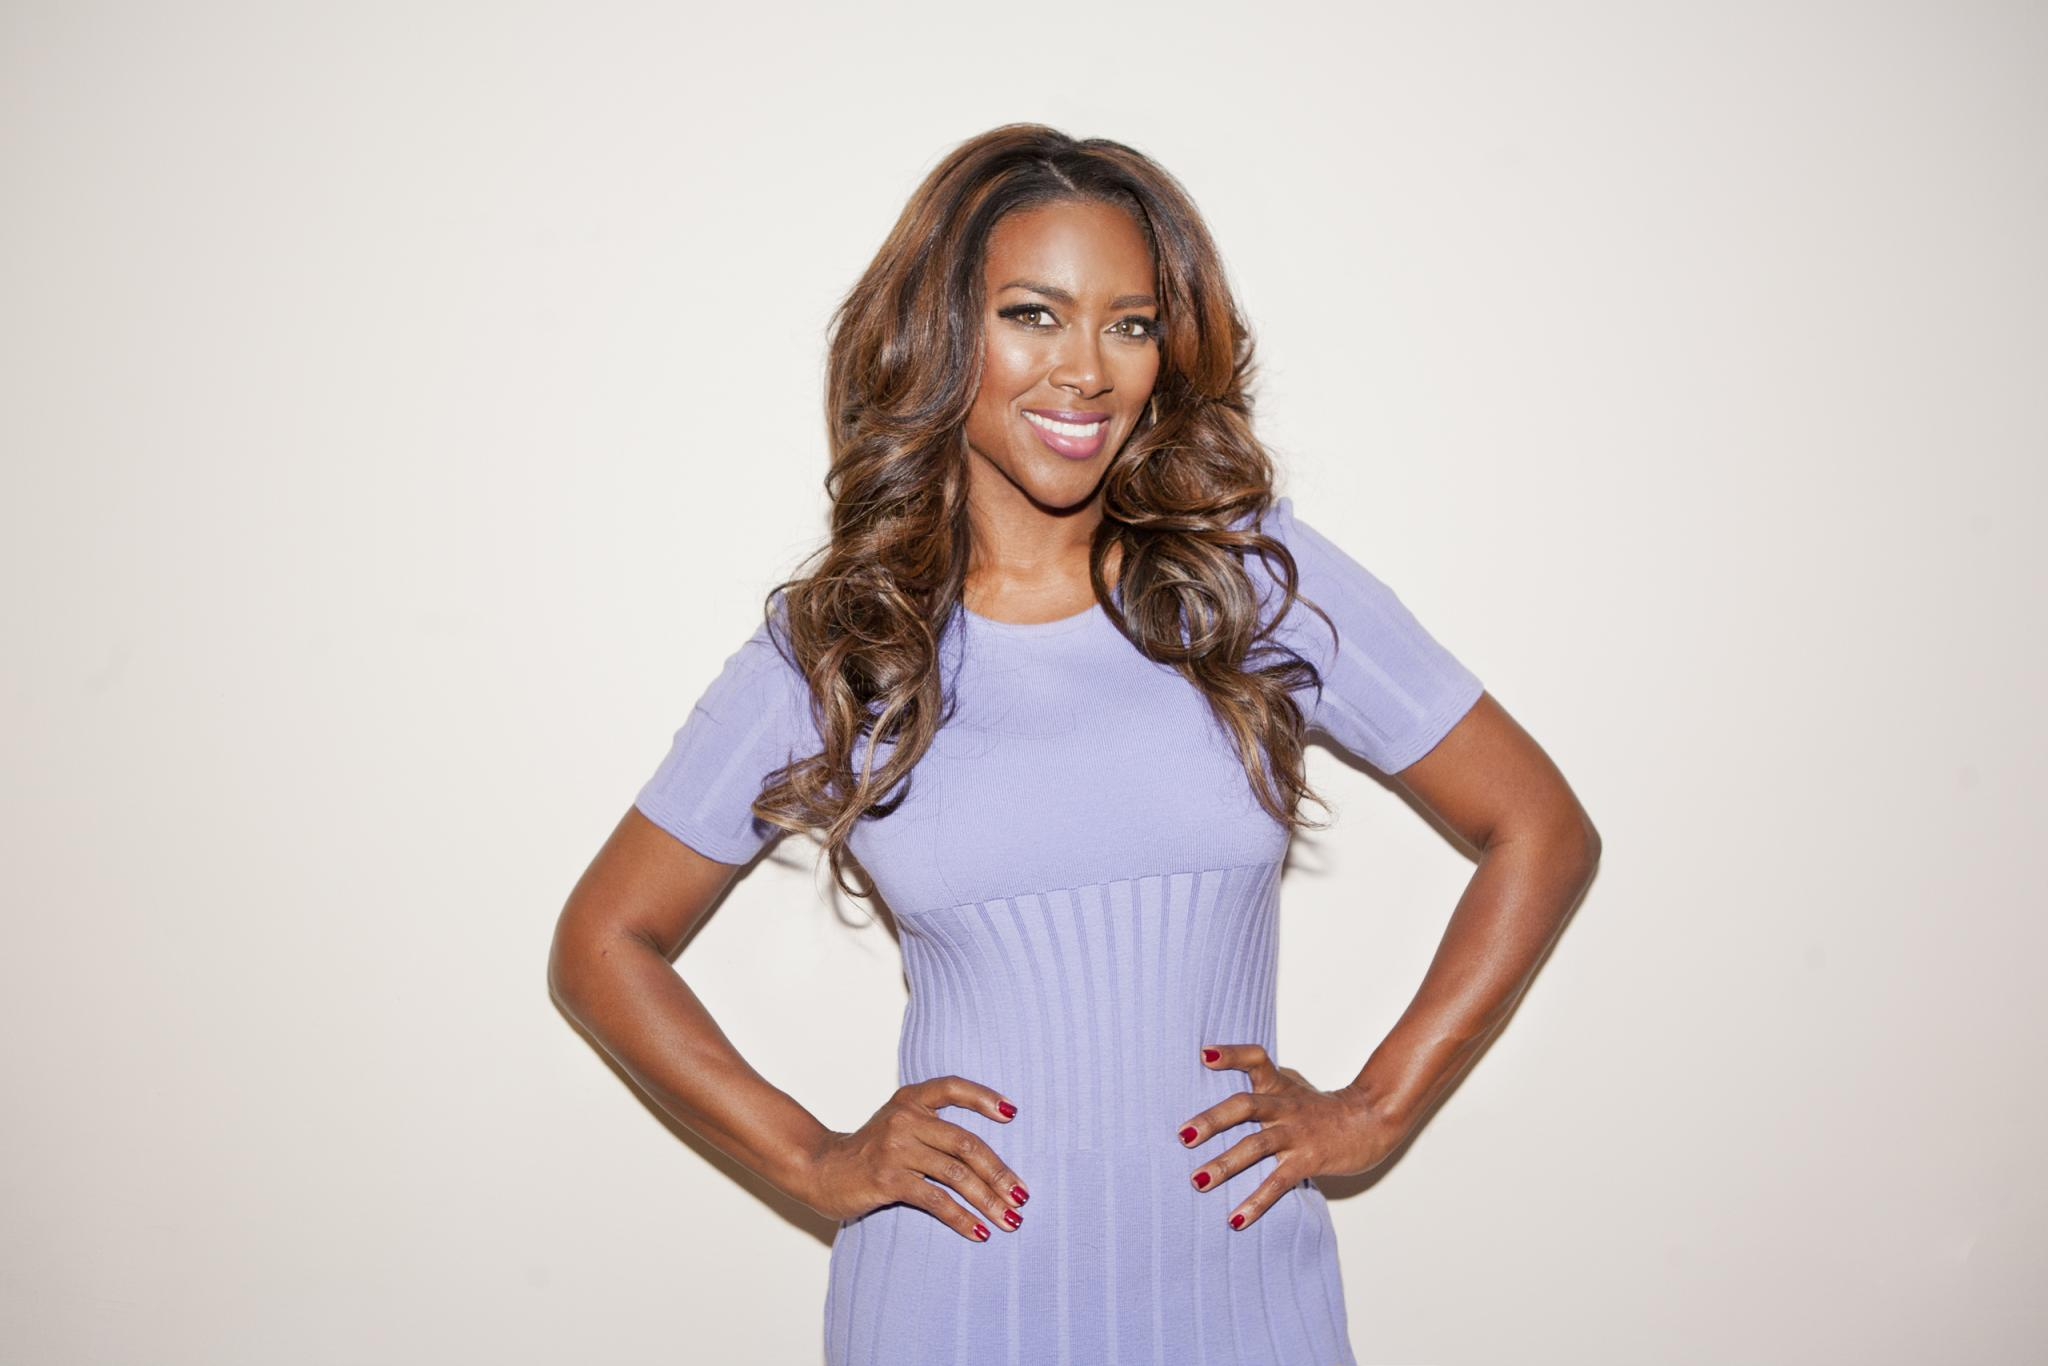 Breaking: Kenya Moore Speaks Out About The Momentous Reunion Brawl